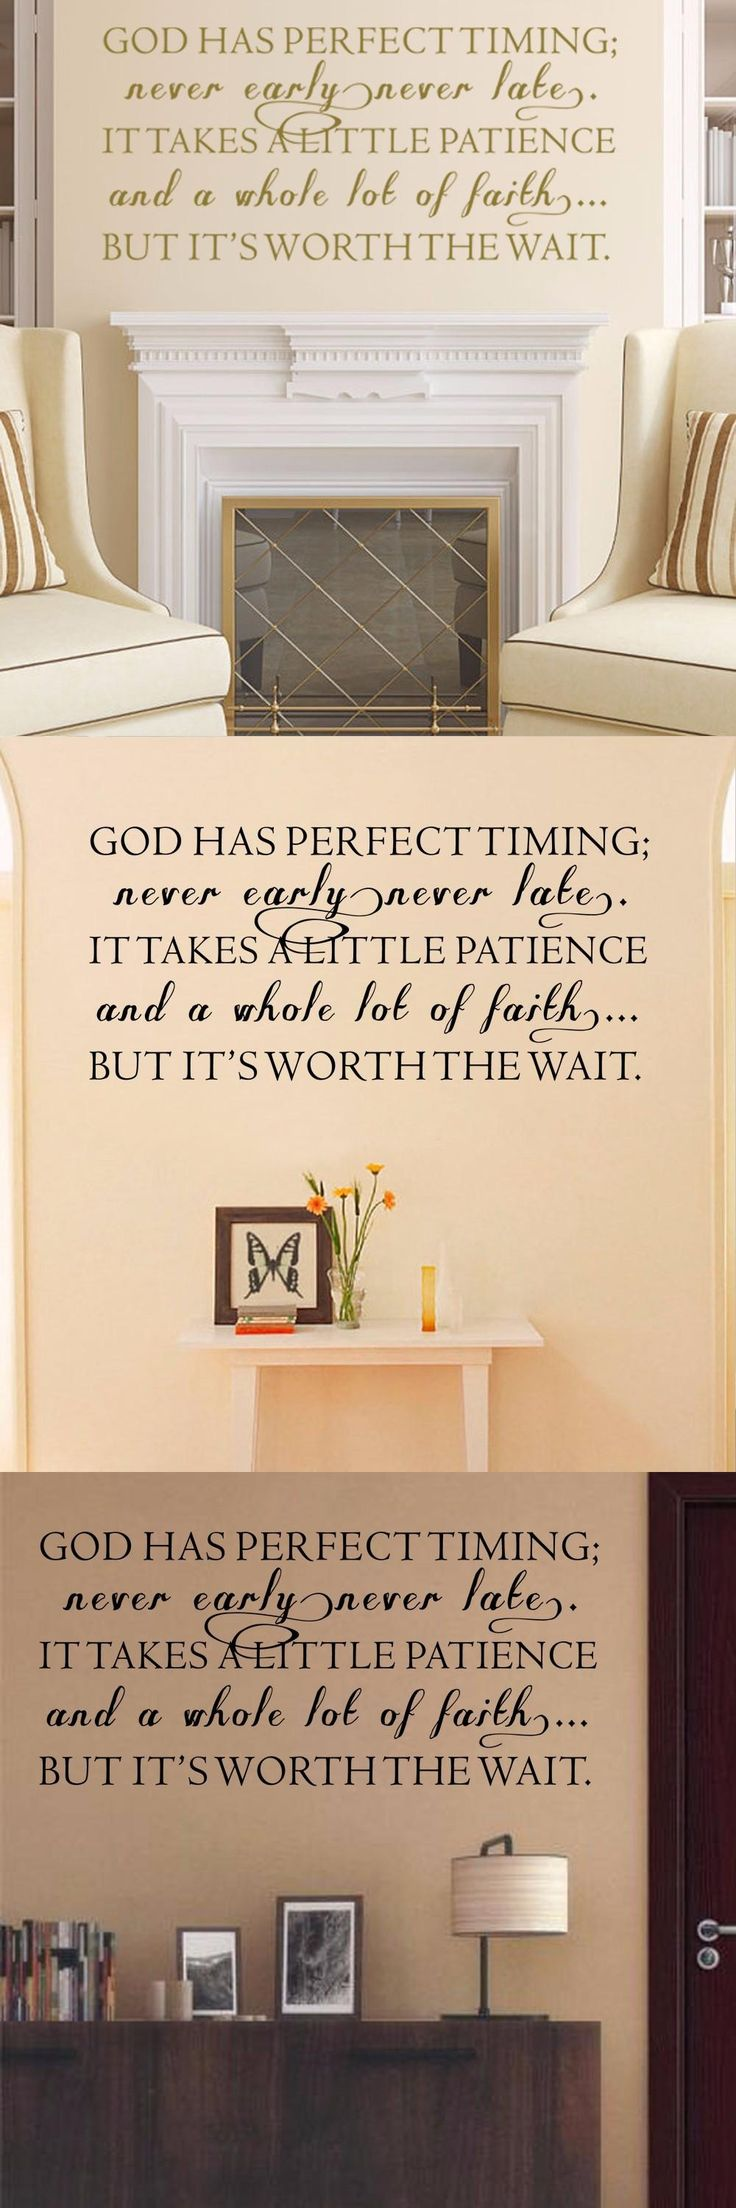 Psalms wall decals christian wall decals ine walls -  Visit To Buy Christian Wall Decal God Has Perfect Timing Phrase Decal